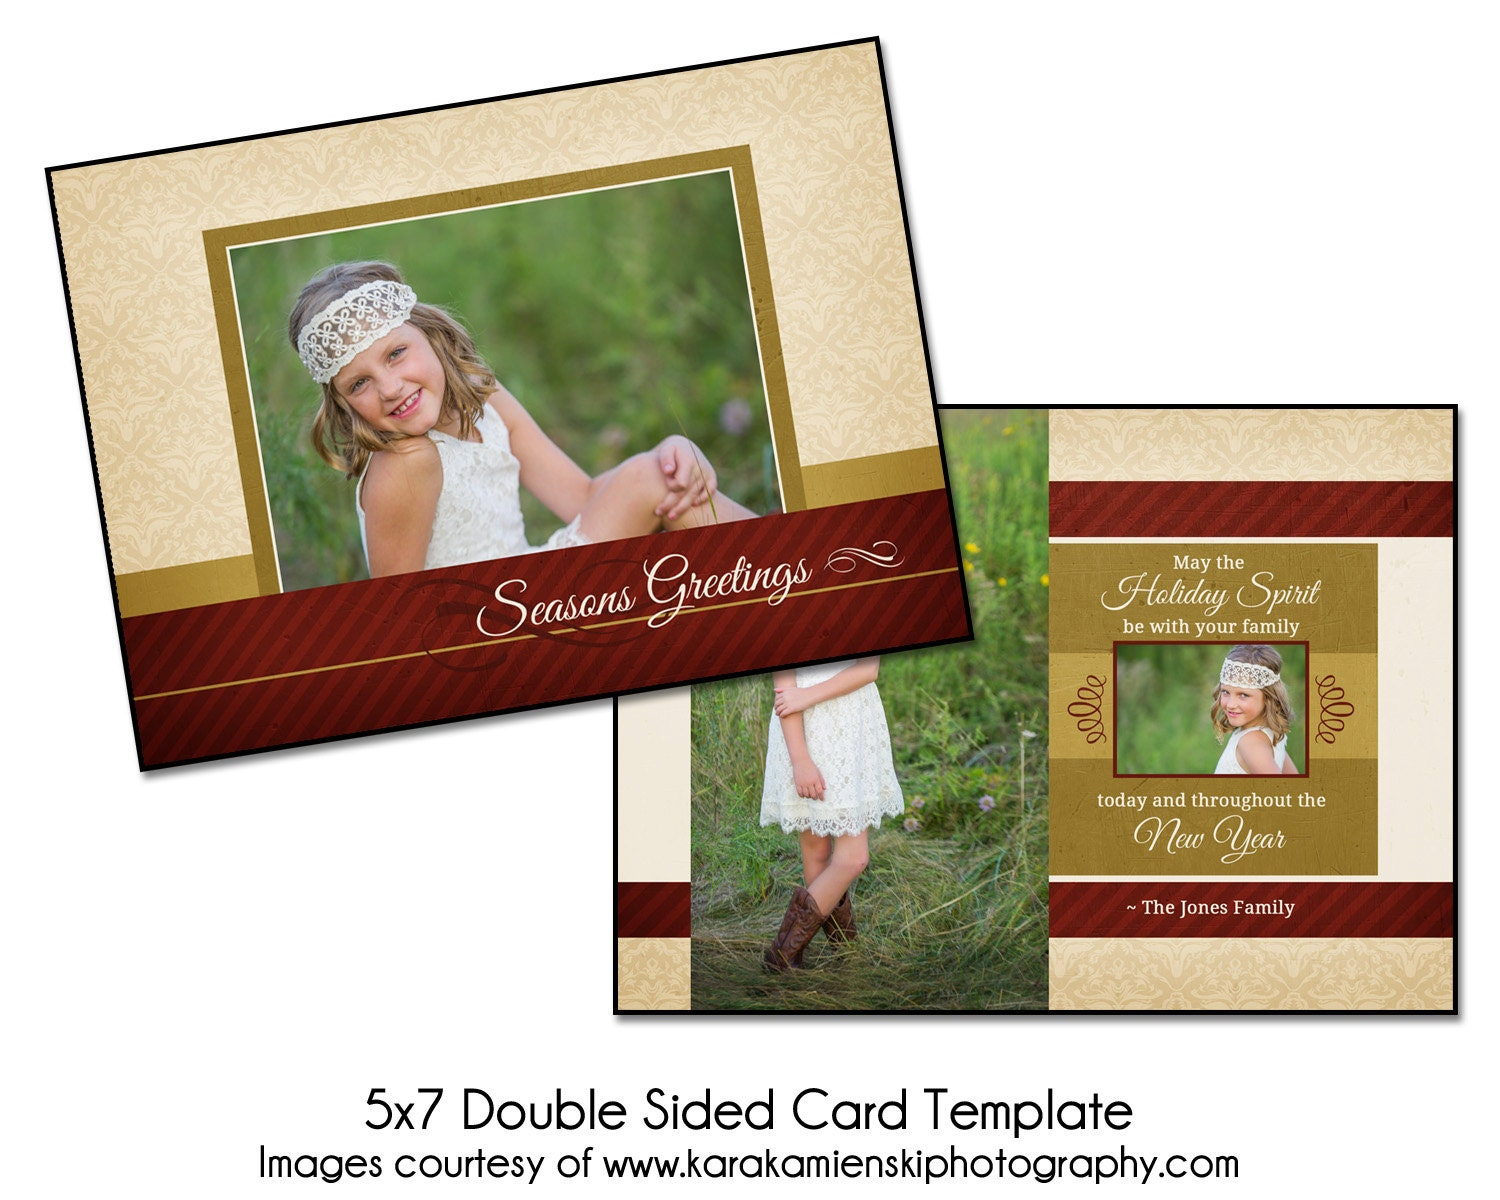 christmas card template holiday spirit 5x7 double sided. Black Bedroom Furniture Sets. Home Design Ideas